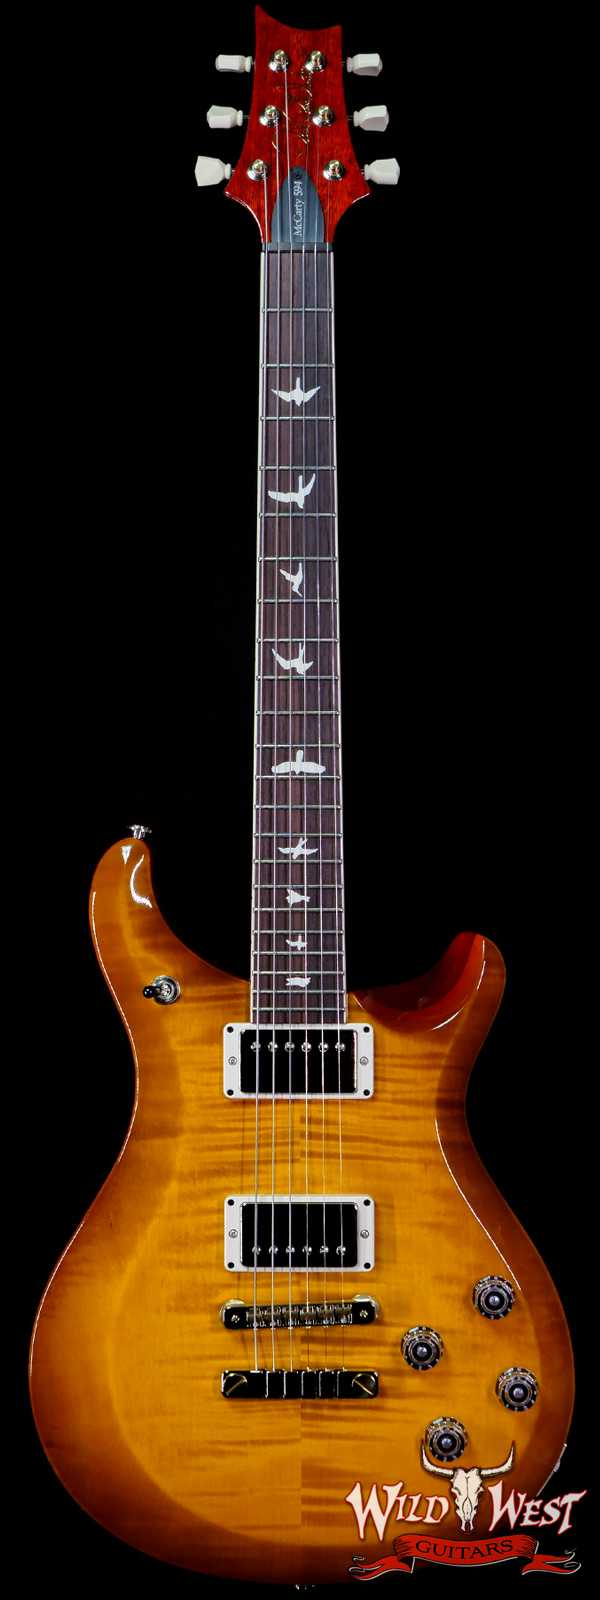 Paul Reed Smith PRS S2 McCarty 594 Flame Maple Top McCarty Sunburst